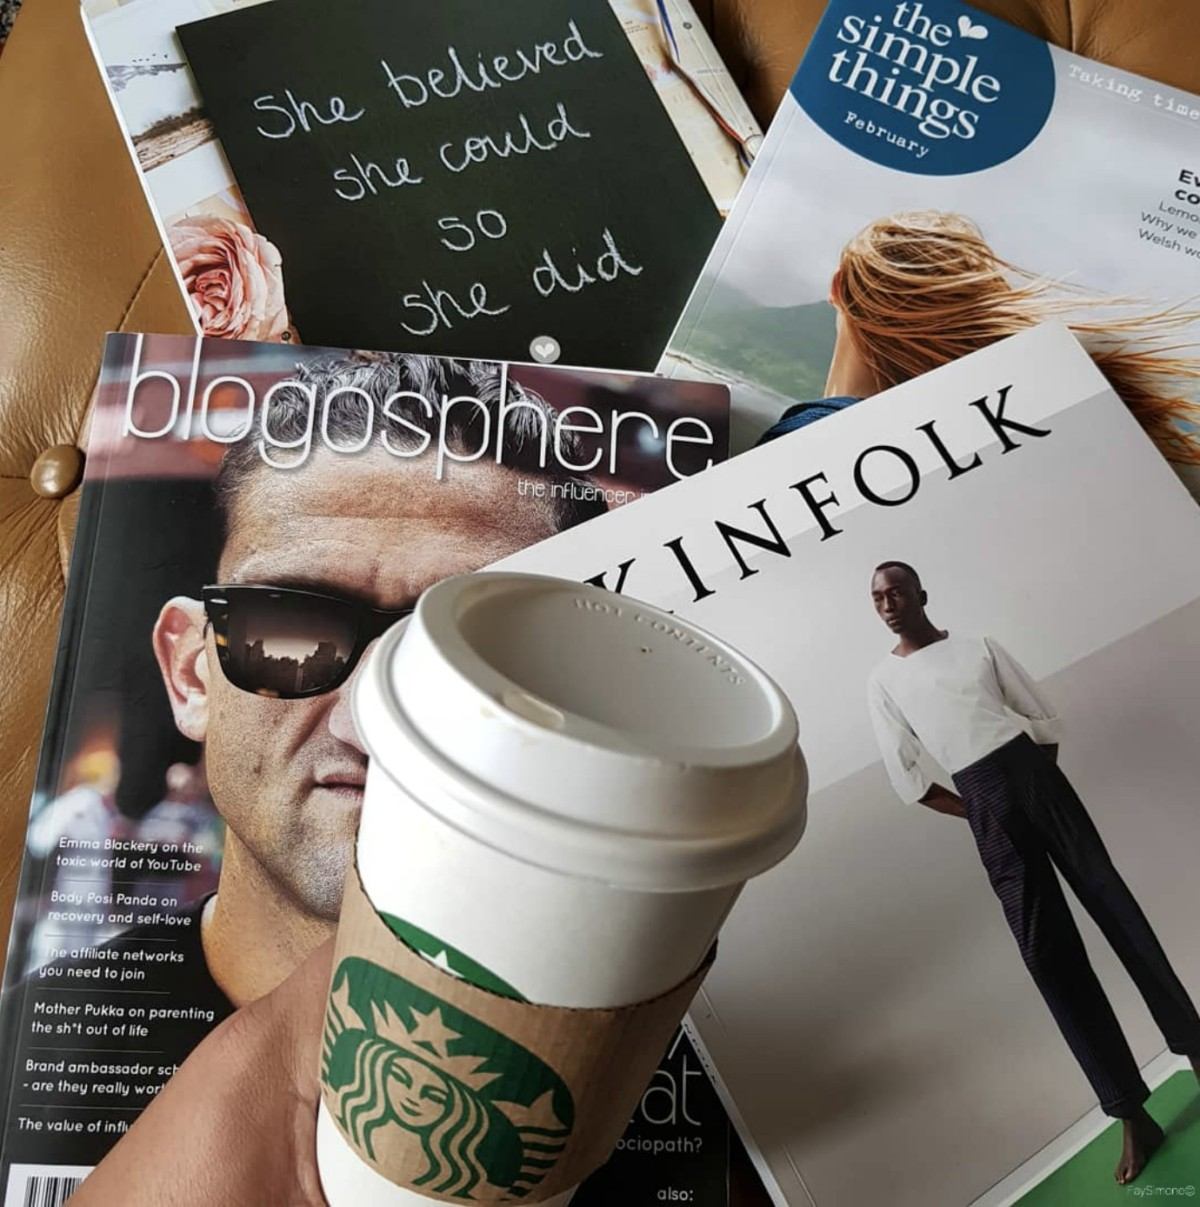 A Perfect Sunday, Starbucks coffee and magazines, coffee and magazines, coffee and reading, Sunday, What makes a perfect sunday, 5 things to do on Sunday, Preparation, Cleaning, Reading, Coffee Drinking, Tea Drinking